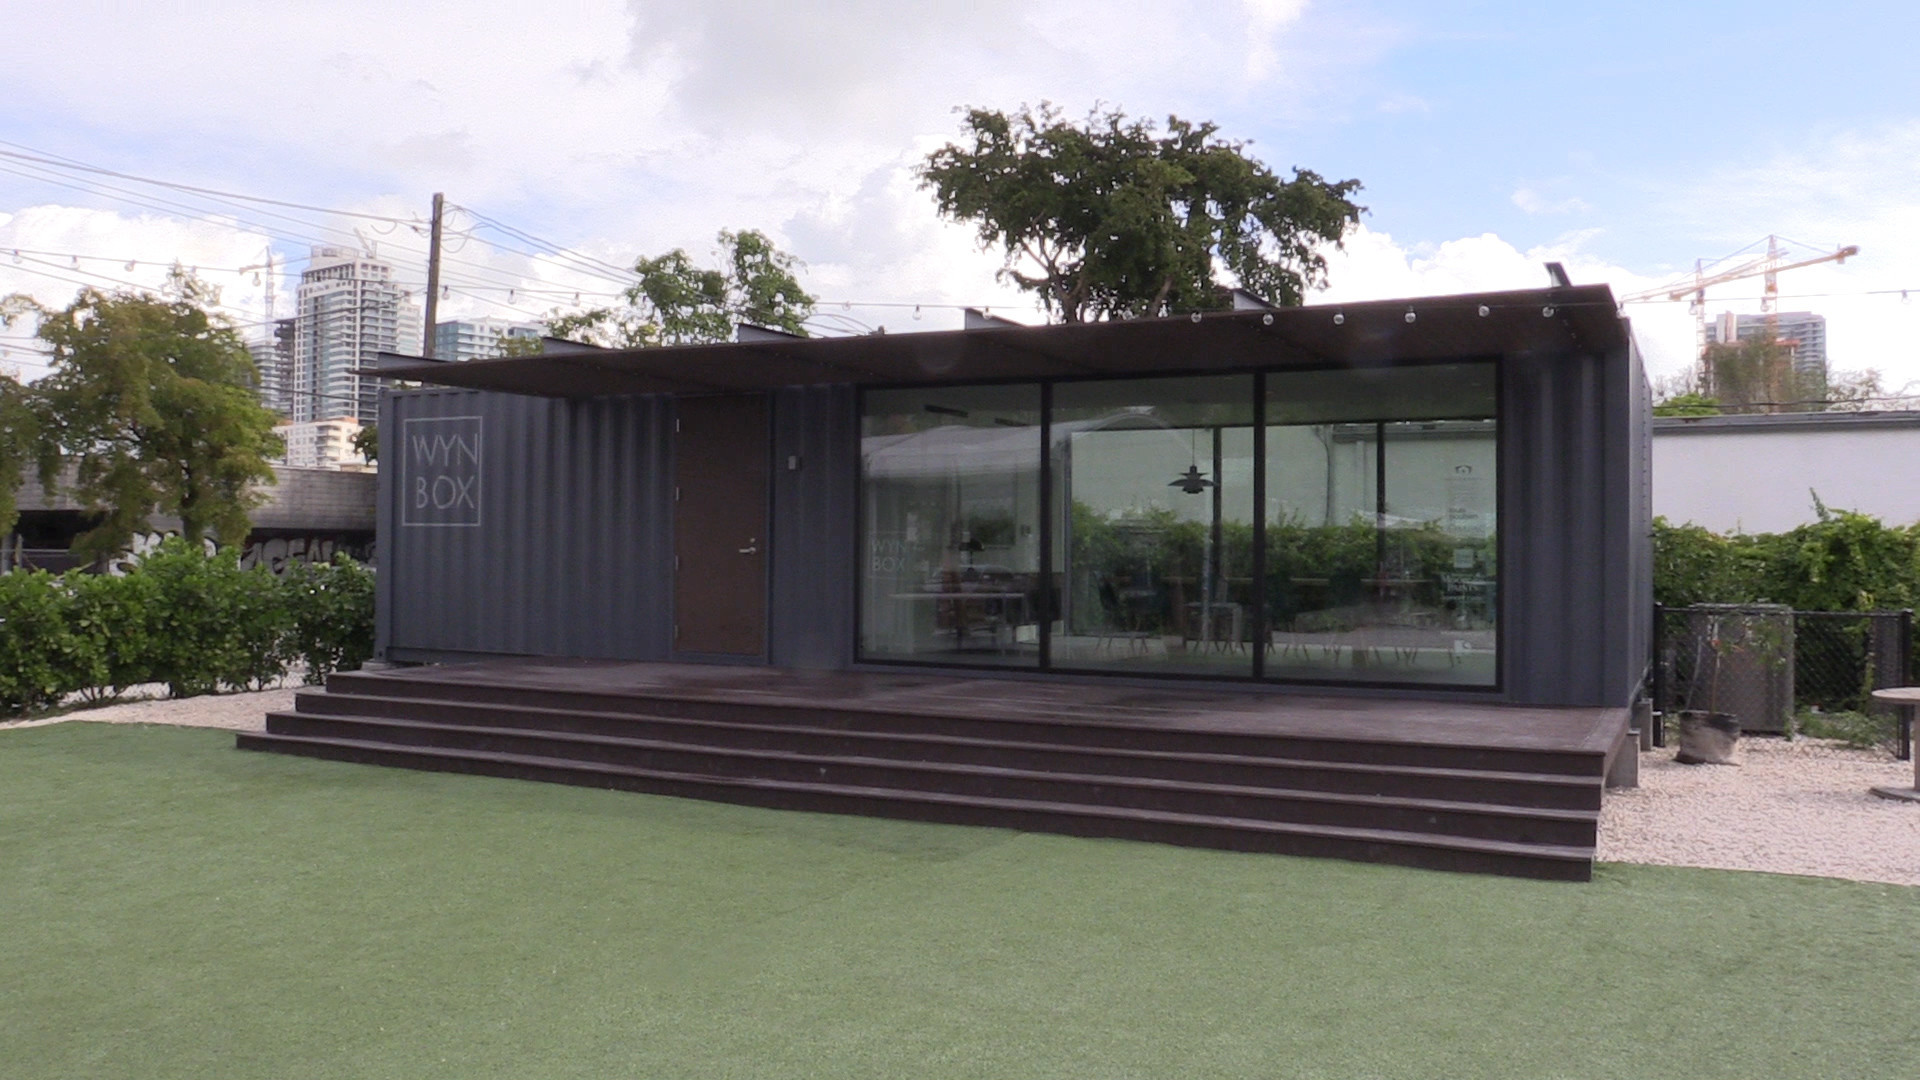 Shipping containers taking on new life as homes and businesses